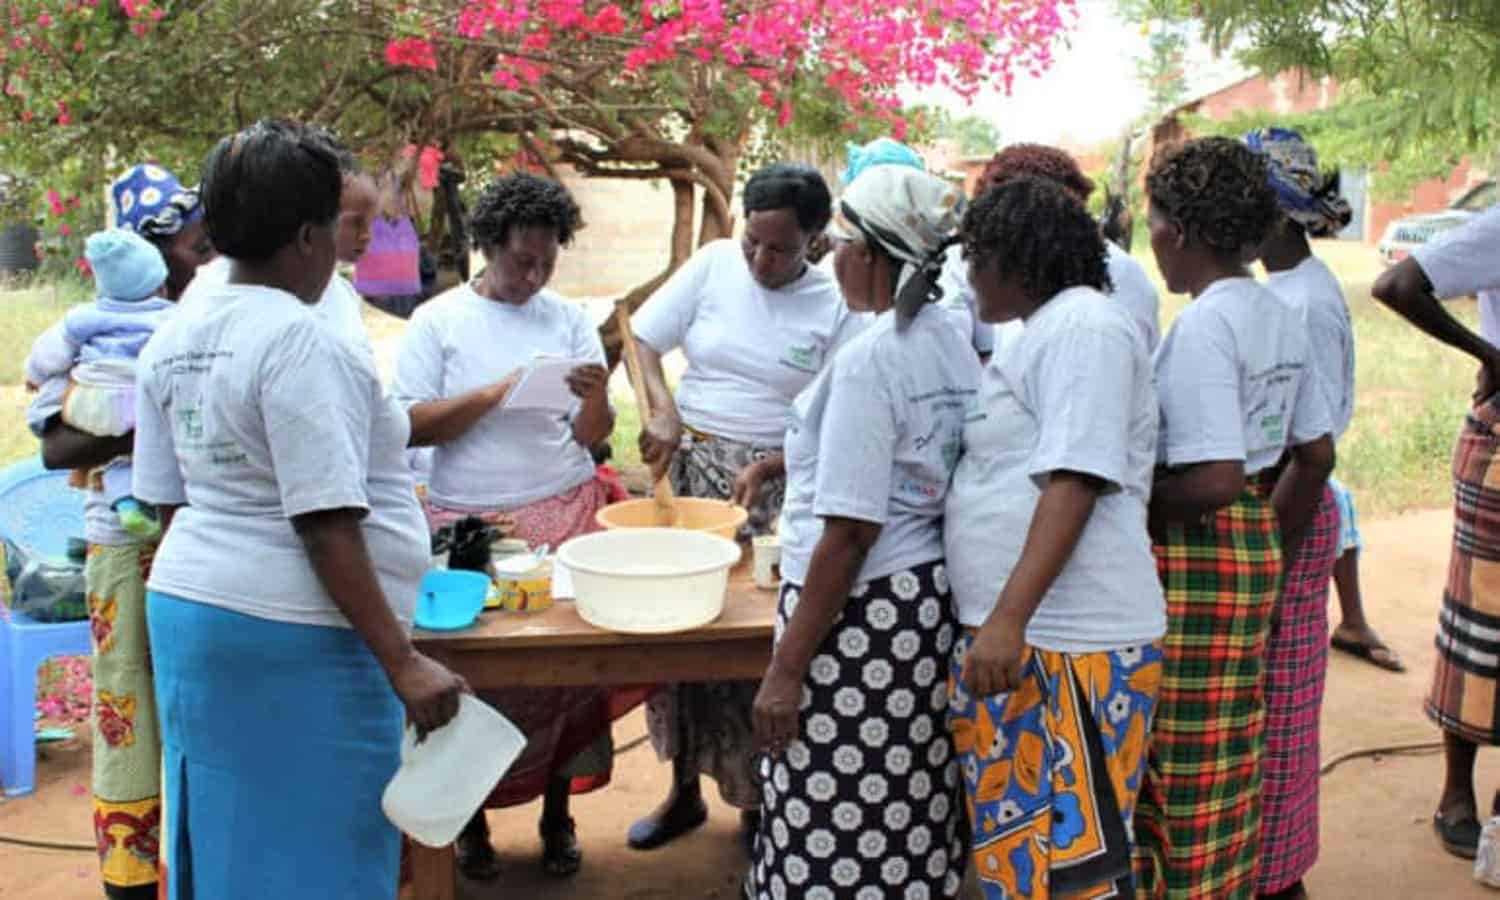 ICRISAT is fighting malnutrition and undernutrition in Kenya with participatory cooking trainings and demonstrations for women.